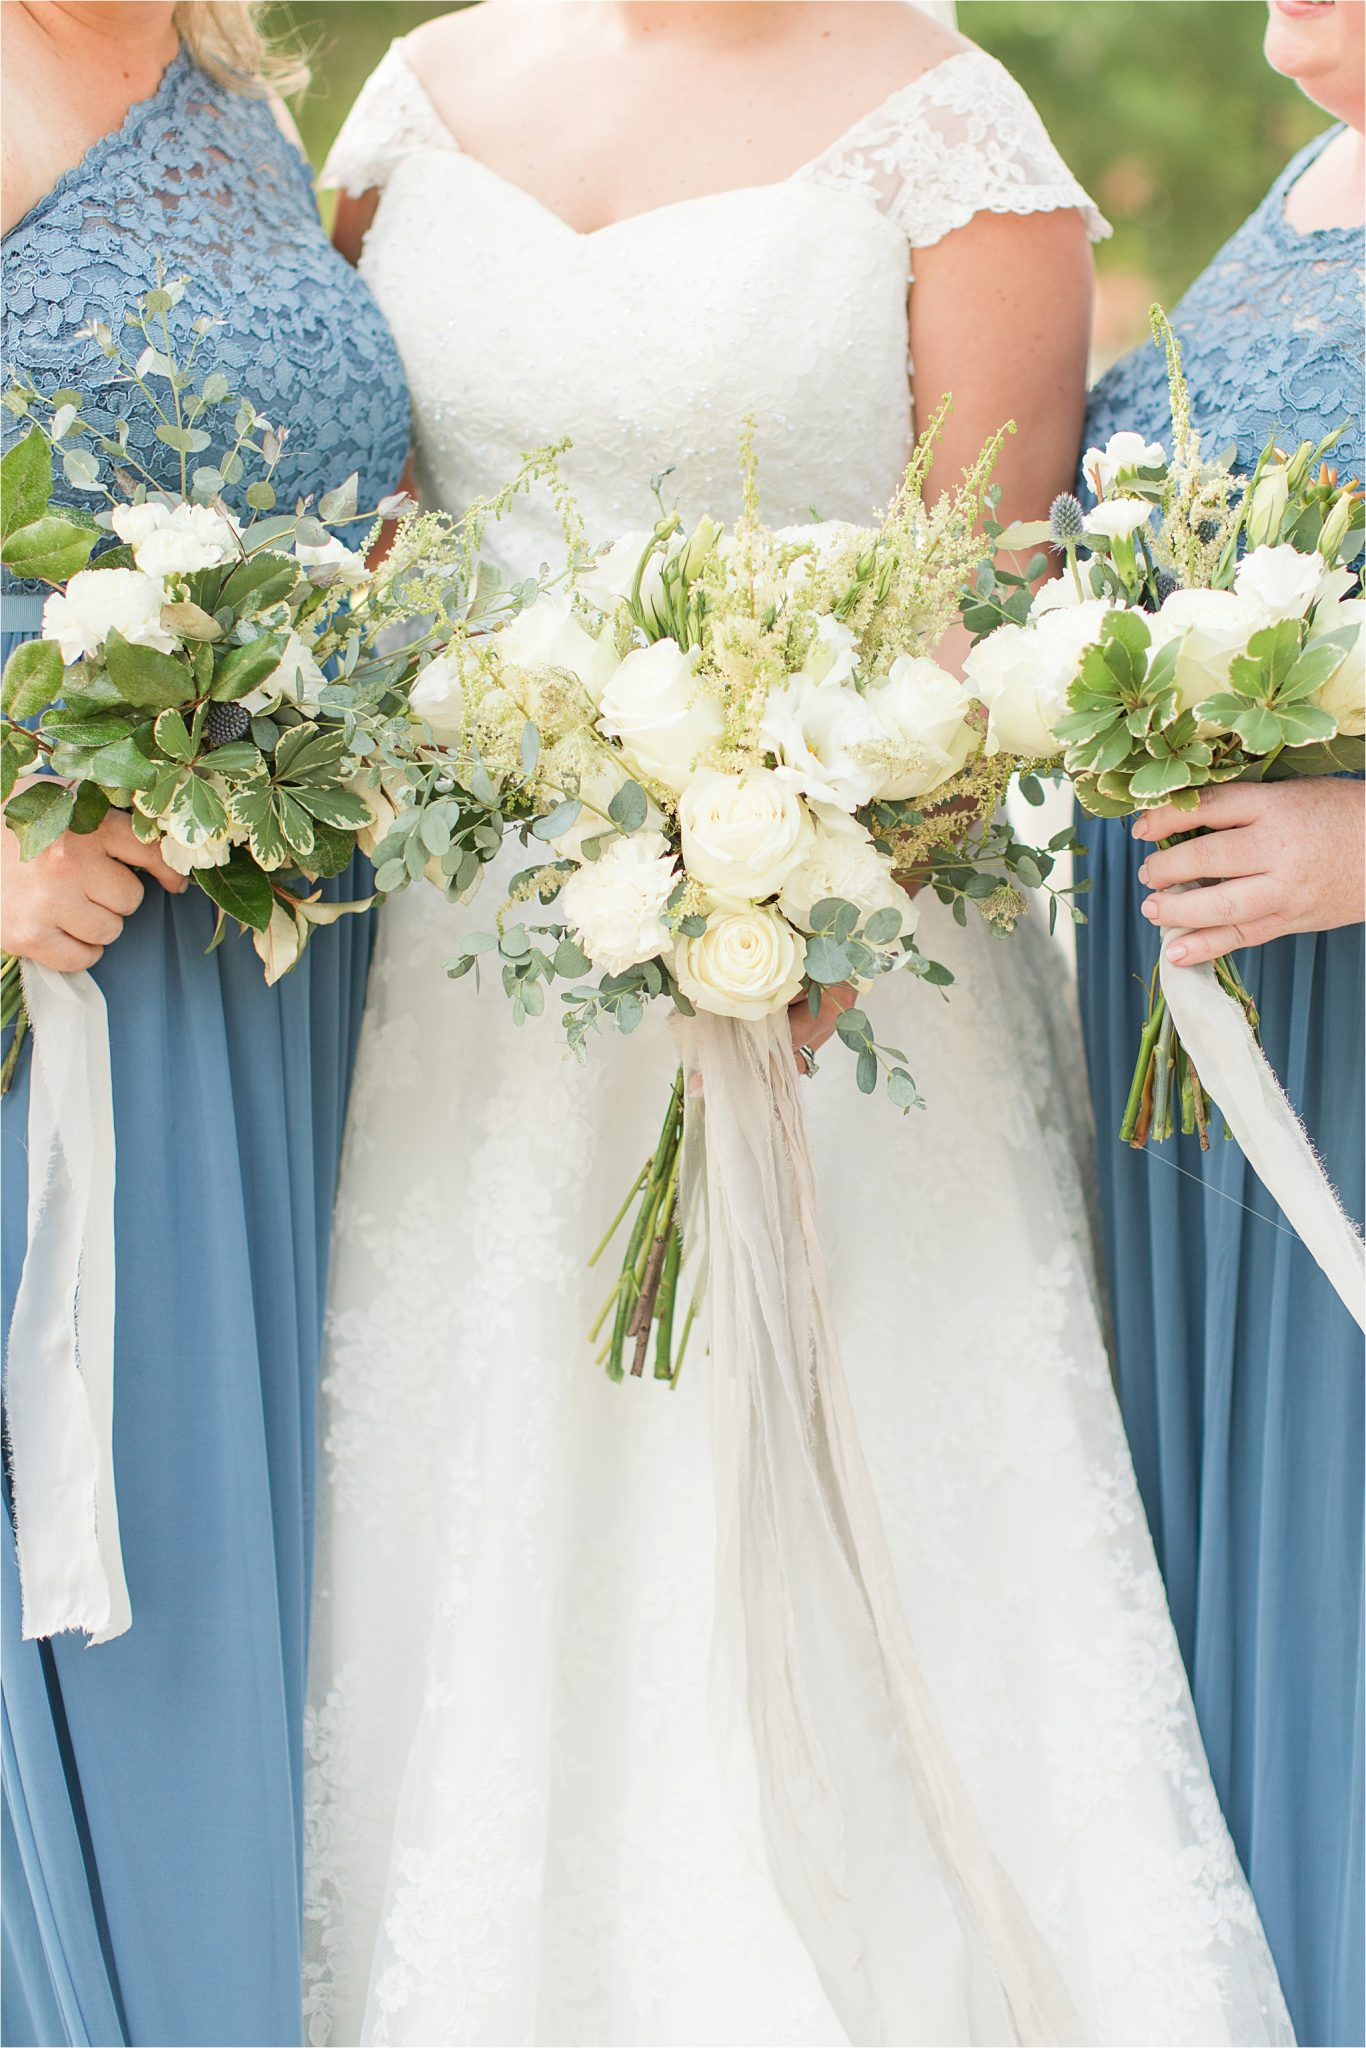 Pastel Themed Wedding-The Chapel at the Waters-Montgomery Alabama Photographer-Miles & Meredyth-Blue Themed Wedding-Blue Bridesmaids Dresses-Wedding Dress